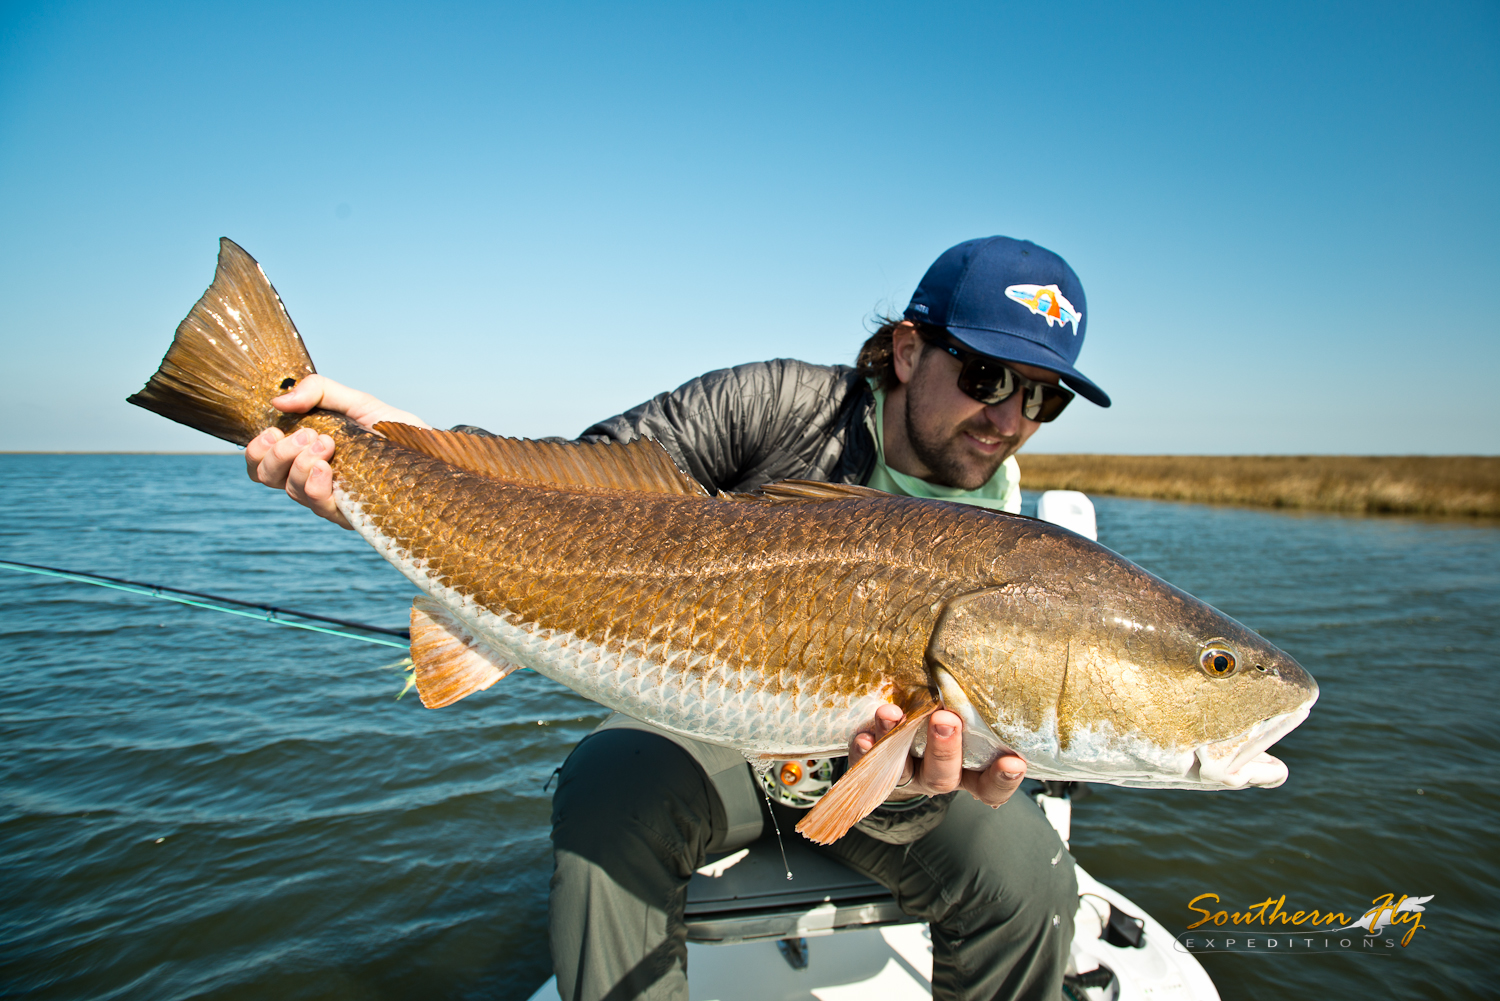 Louisiana Redfish Guide Southern Fly Expeditions